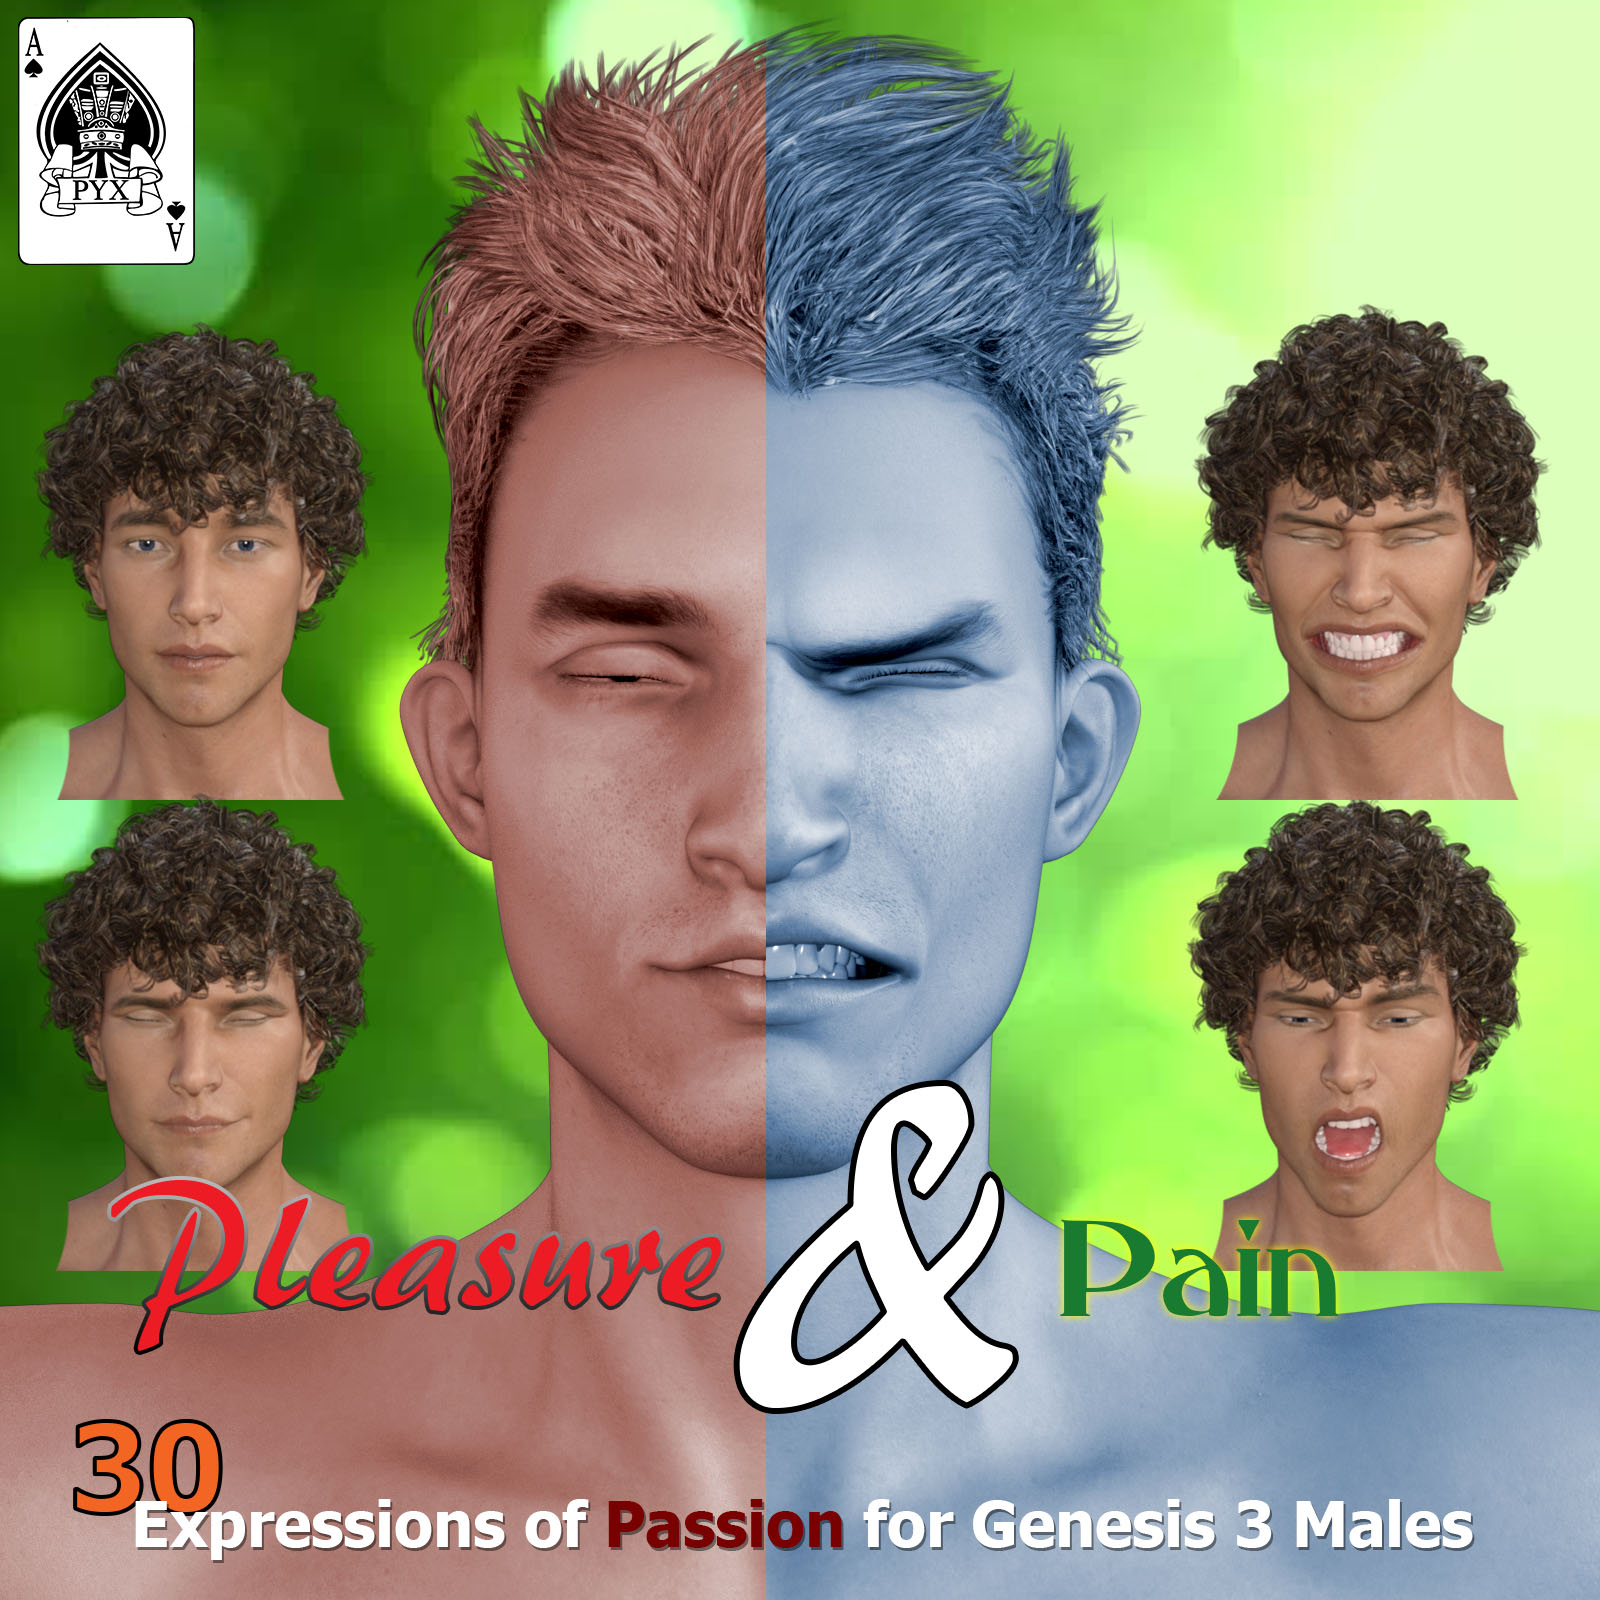 Pleasure and Pain - Expressions for Genesis 3 Male by AcePyx